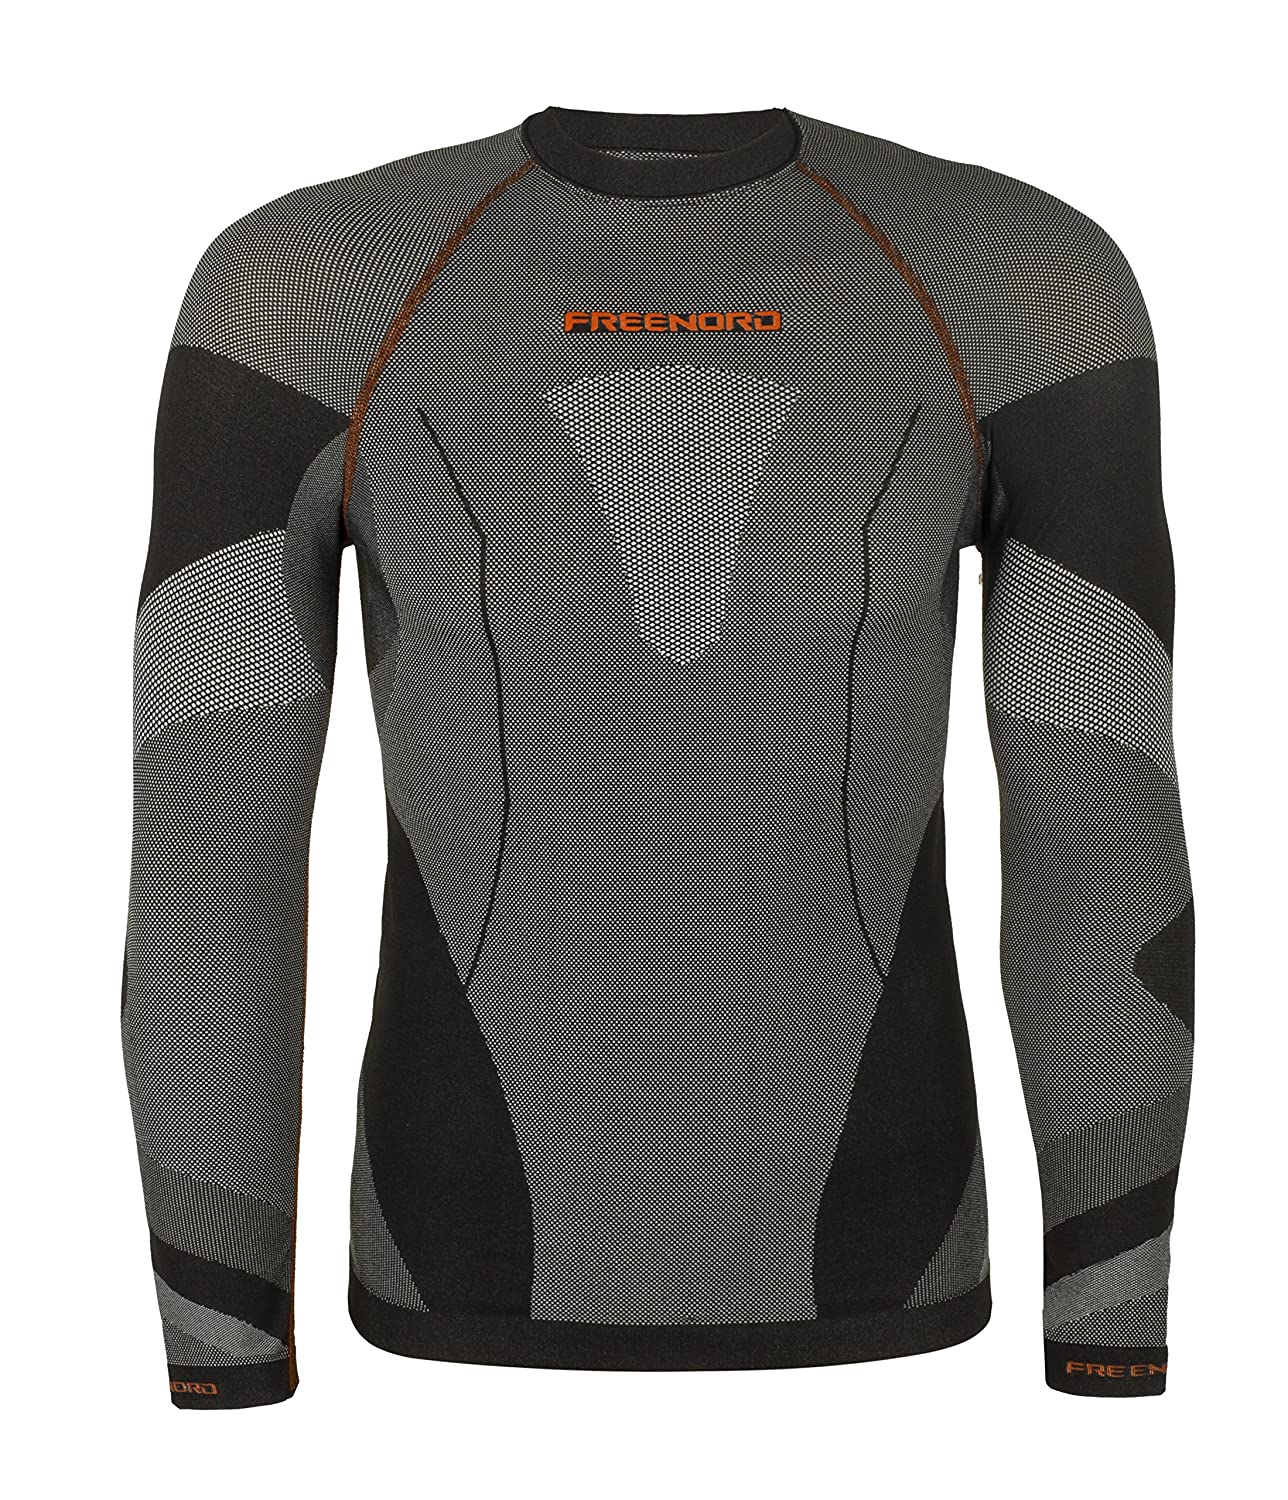 Freenord DRYTECH Basic Funktionswäsche Thermoaktiv Atmungsaktiv Base Layer Unterhemd Langarm